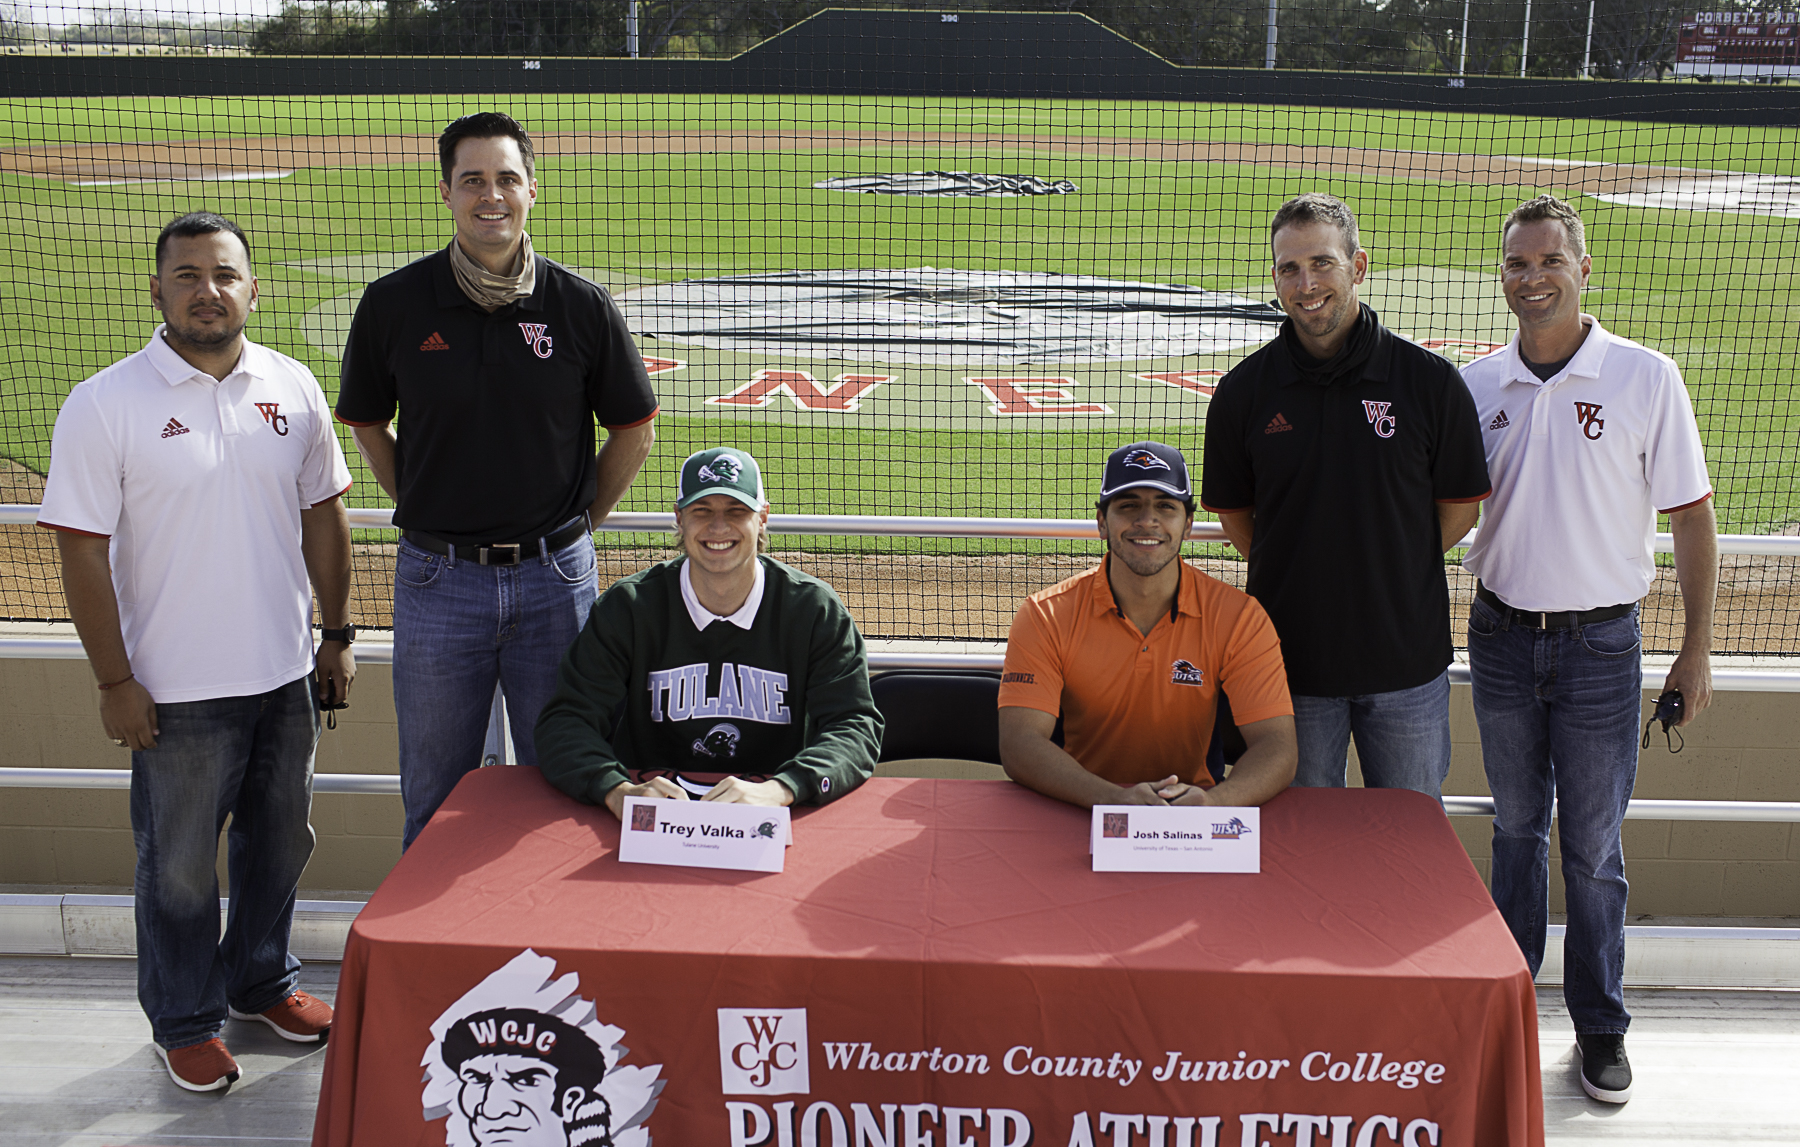 SIGNING DAY - WCJC baseball players sign to play ball at Division 1 universities